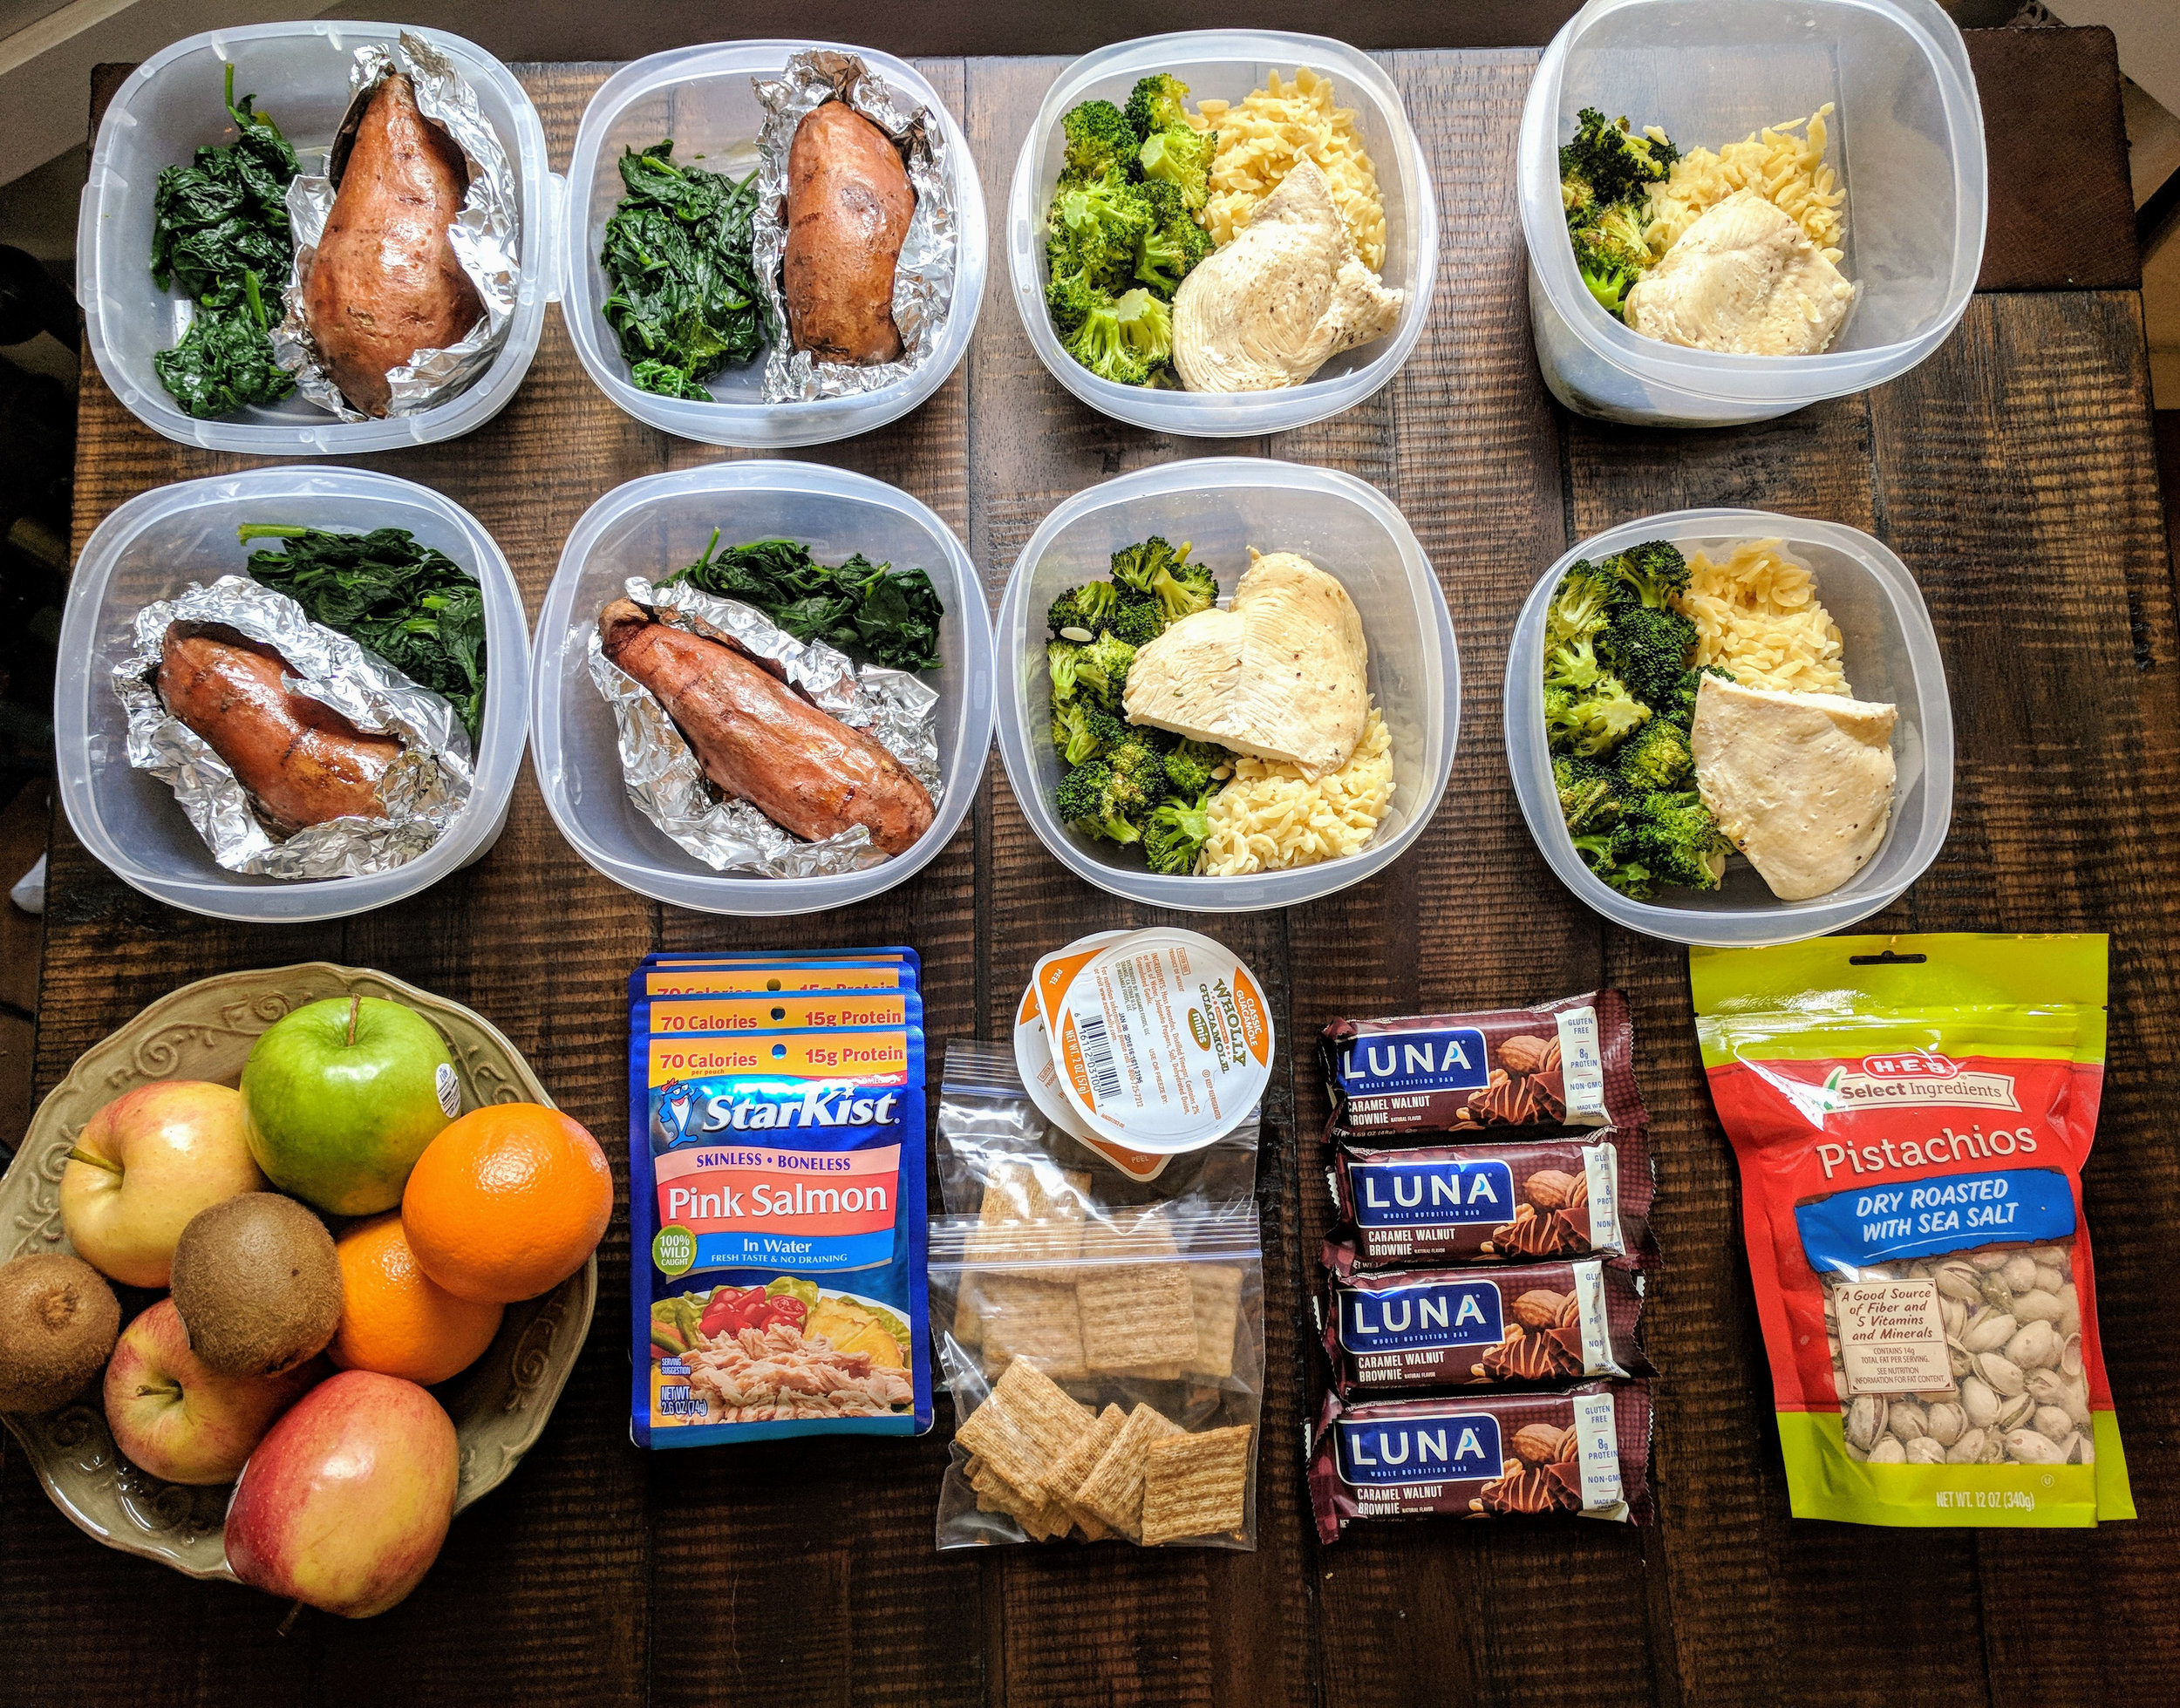 This 90 minute meal prep will provide you with a variety of healthy meals while saving you time, money, and helping you reach your weight loss goals.